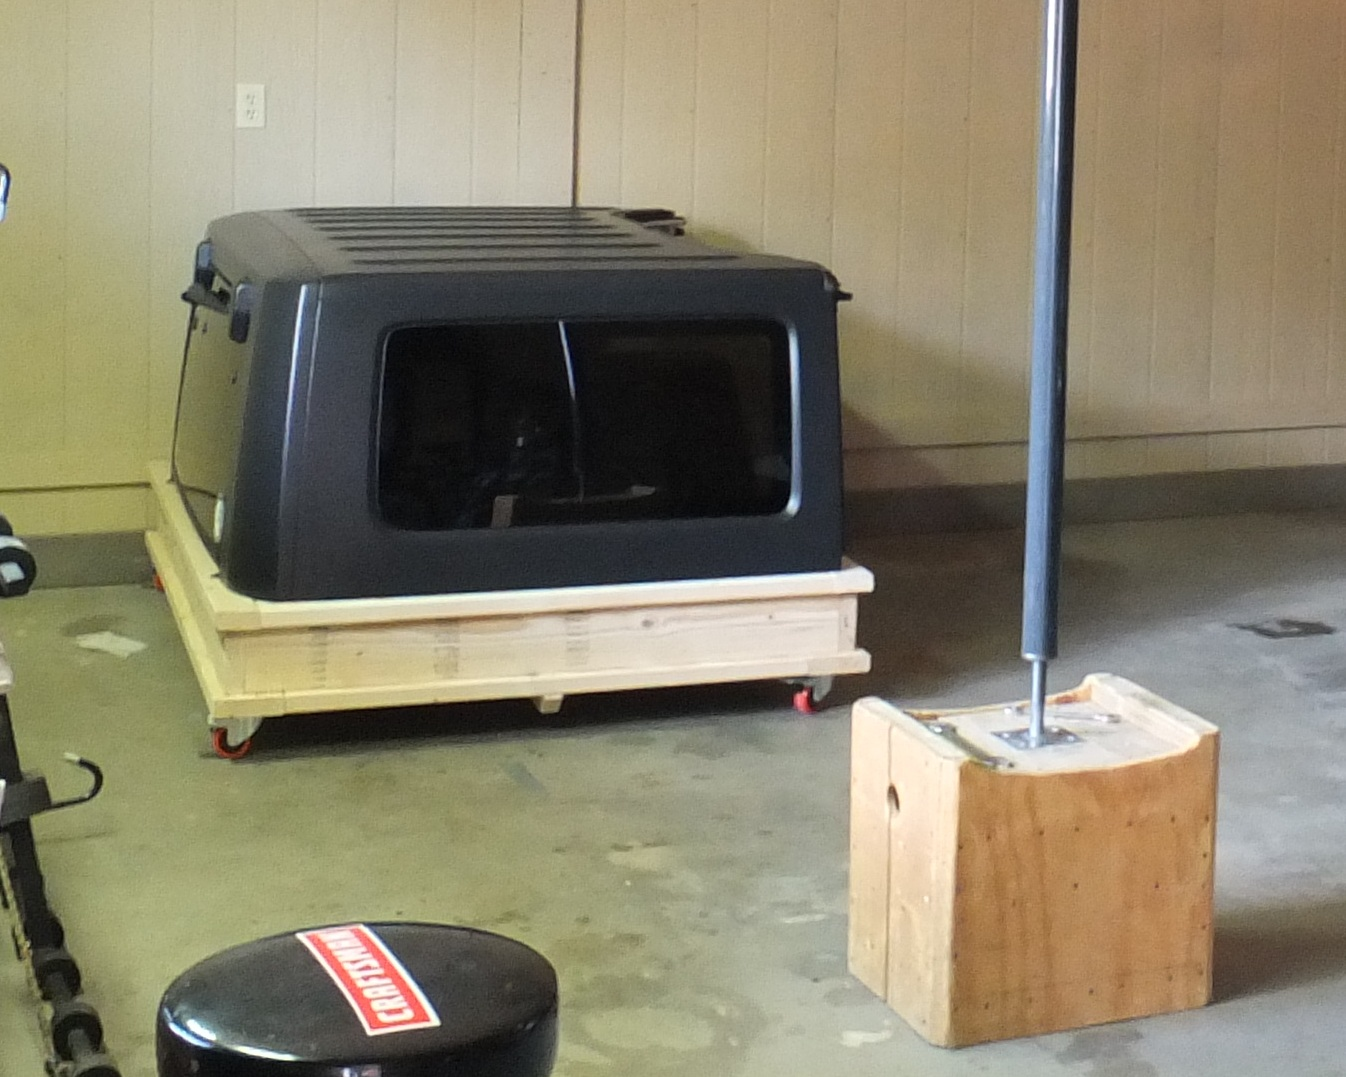 One person camper shell for Chevy S10 pickup-caddy-hard-top-stored.jpg